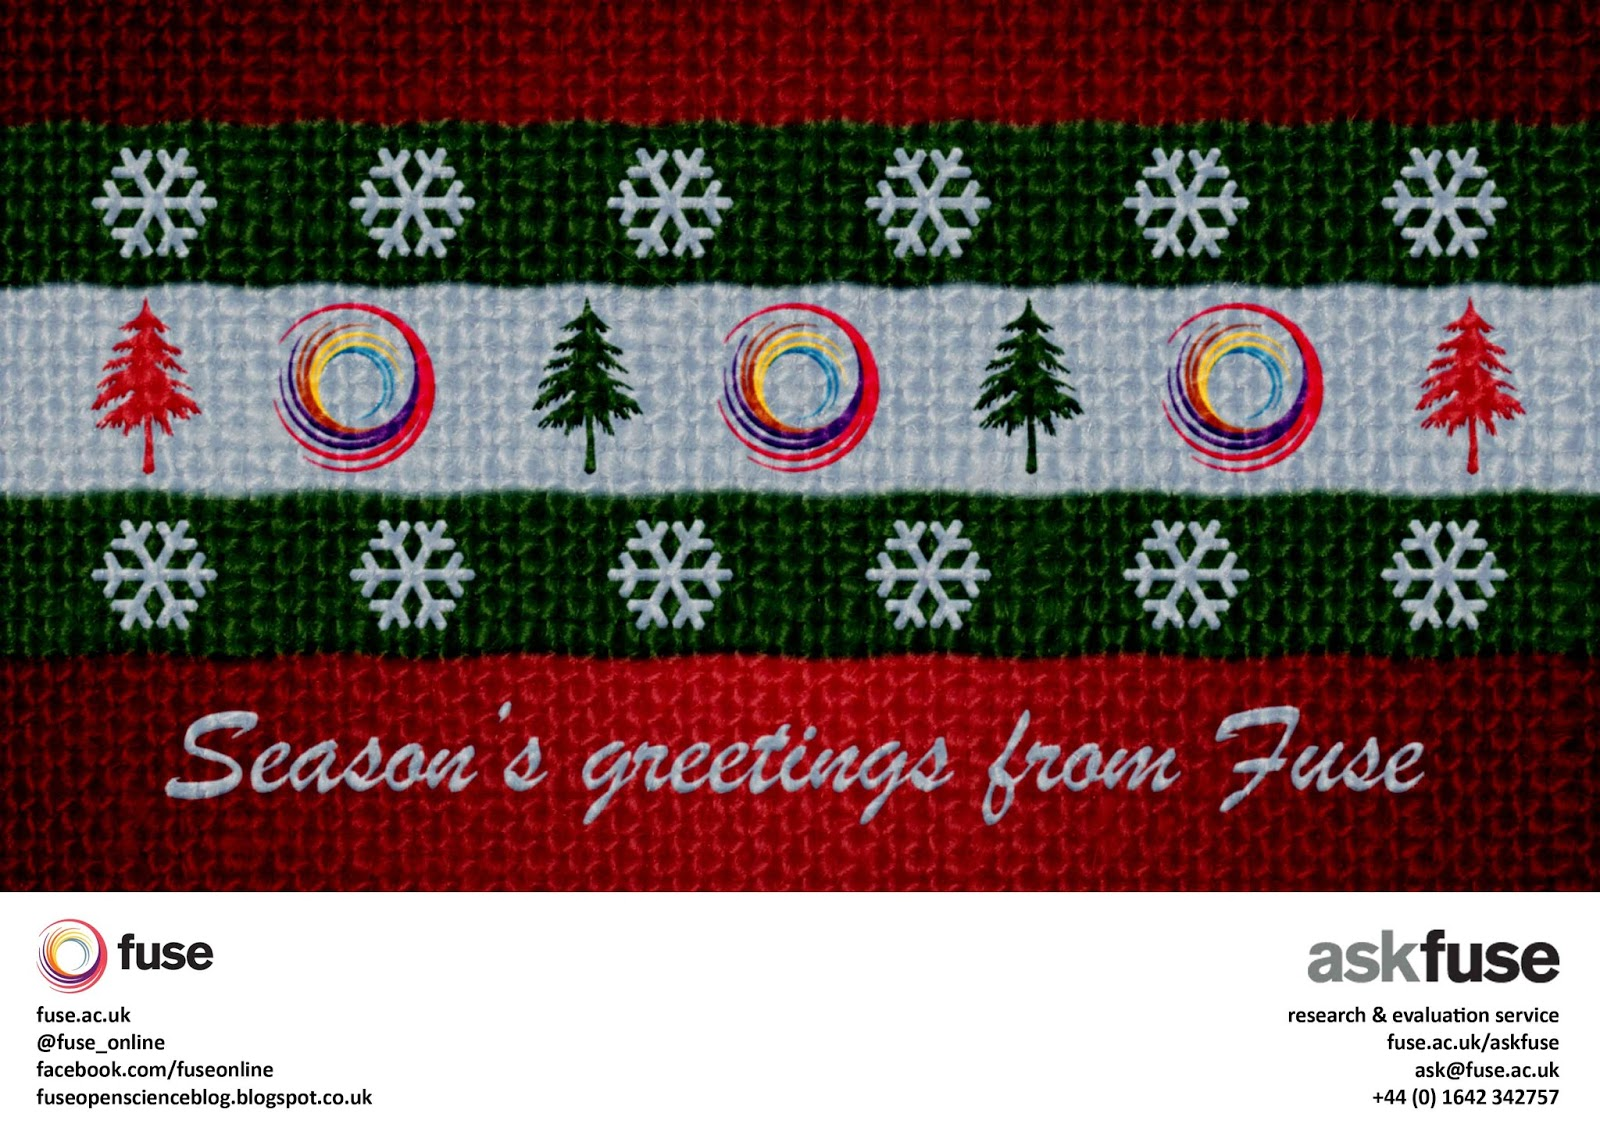 http://fuseopenscienceblog.blogspot.com/2017/12/merry-christmas-from-fuse .html